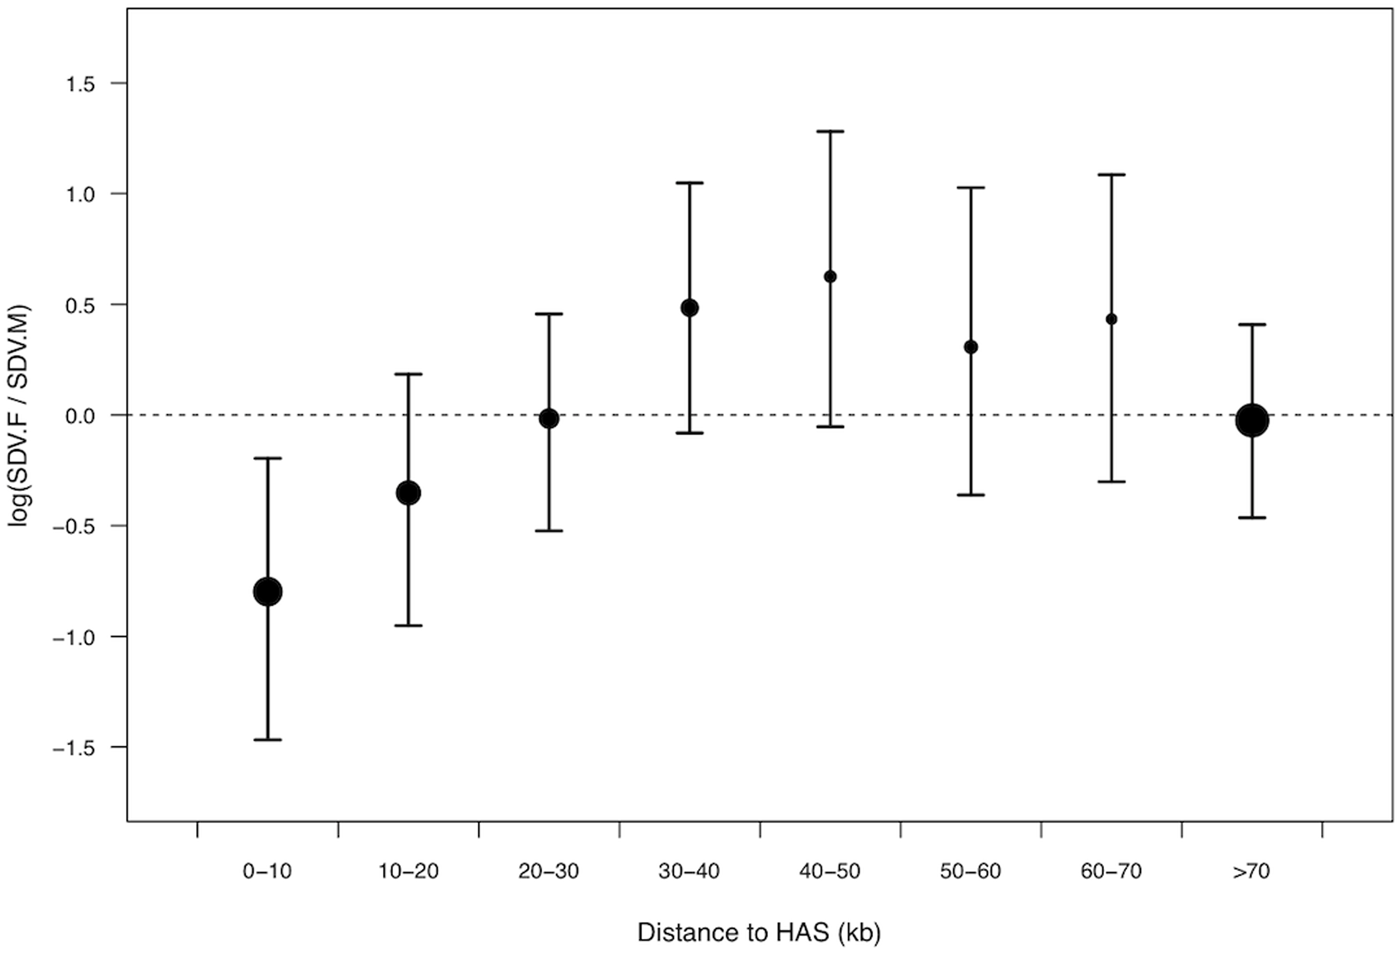 Relative density of female-biased to male-biased X-linked <i>trans</i>-acting SNPs in relation to distance to HAS.